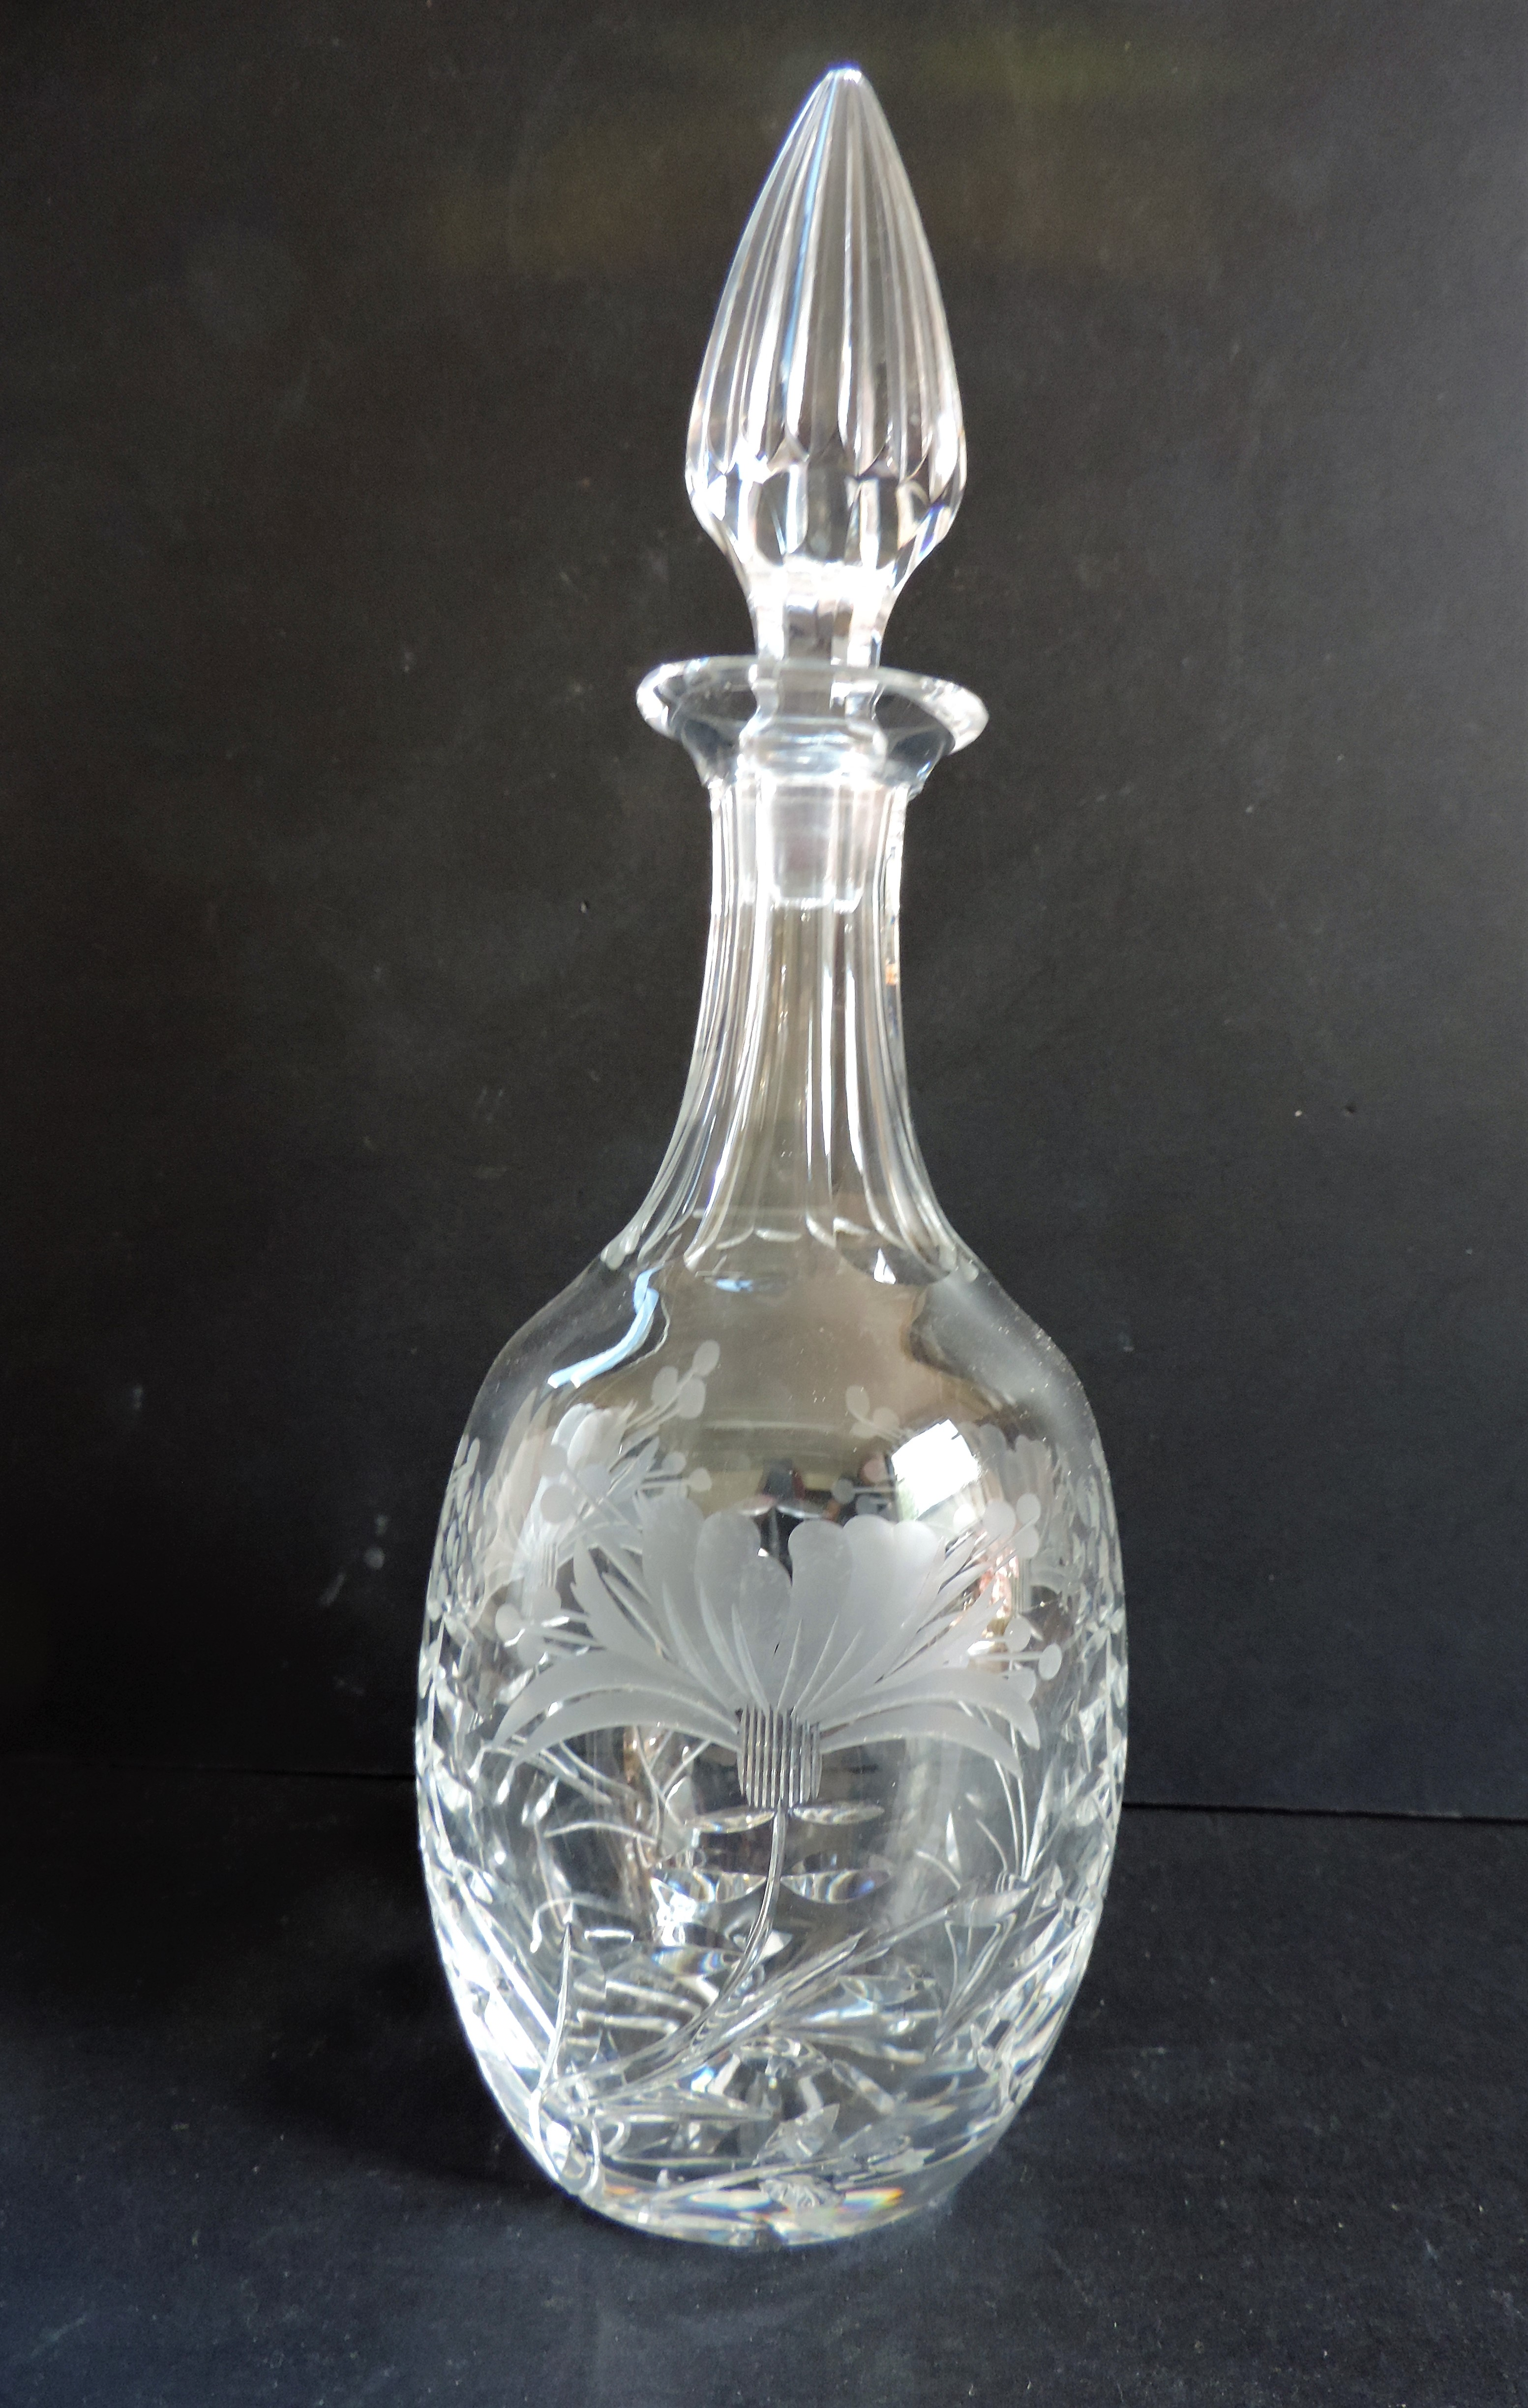 Royal Brierley Crystal Decanter - Image 4 of 5